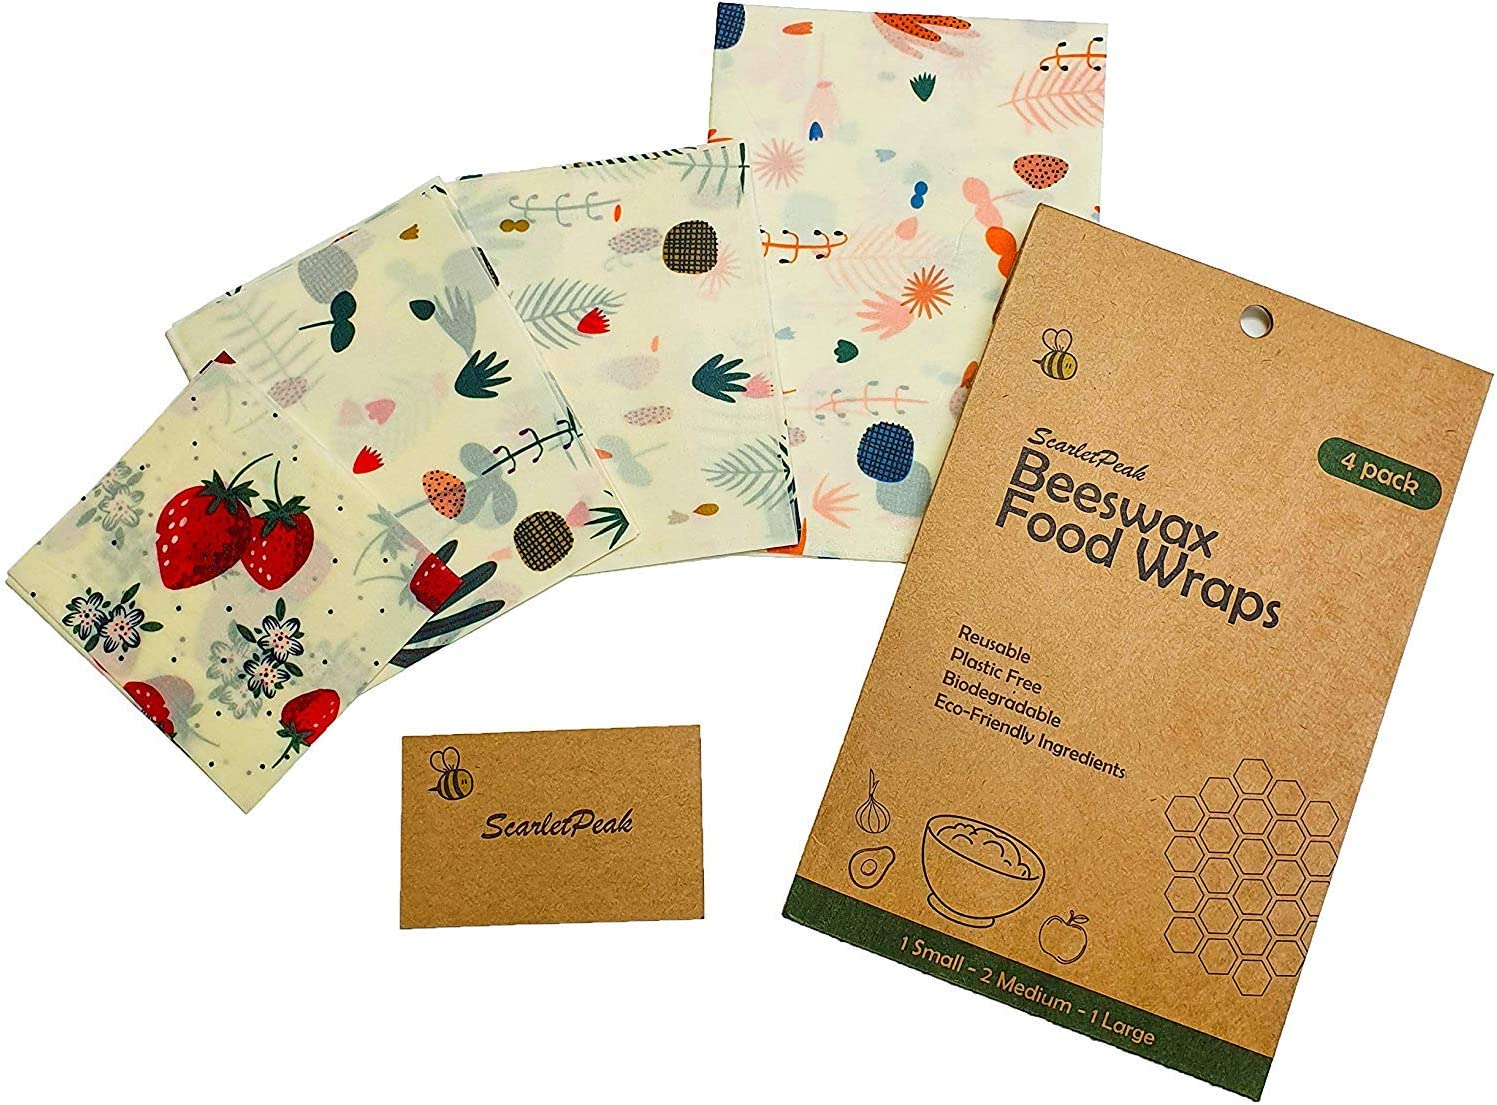 ScarletPeak Beeswax Food Wrap (4 pack), Eco Friendly Reusable Plastic Free Wraps For Sustainable Storage, Organic Biodegradable Natural Set - 1 Small - 2 Medium - 1 Large